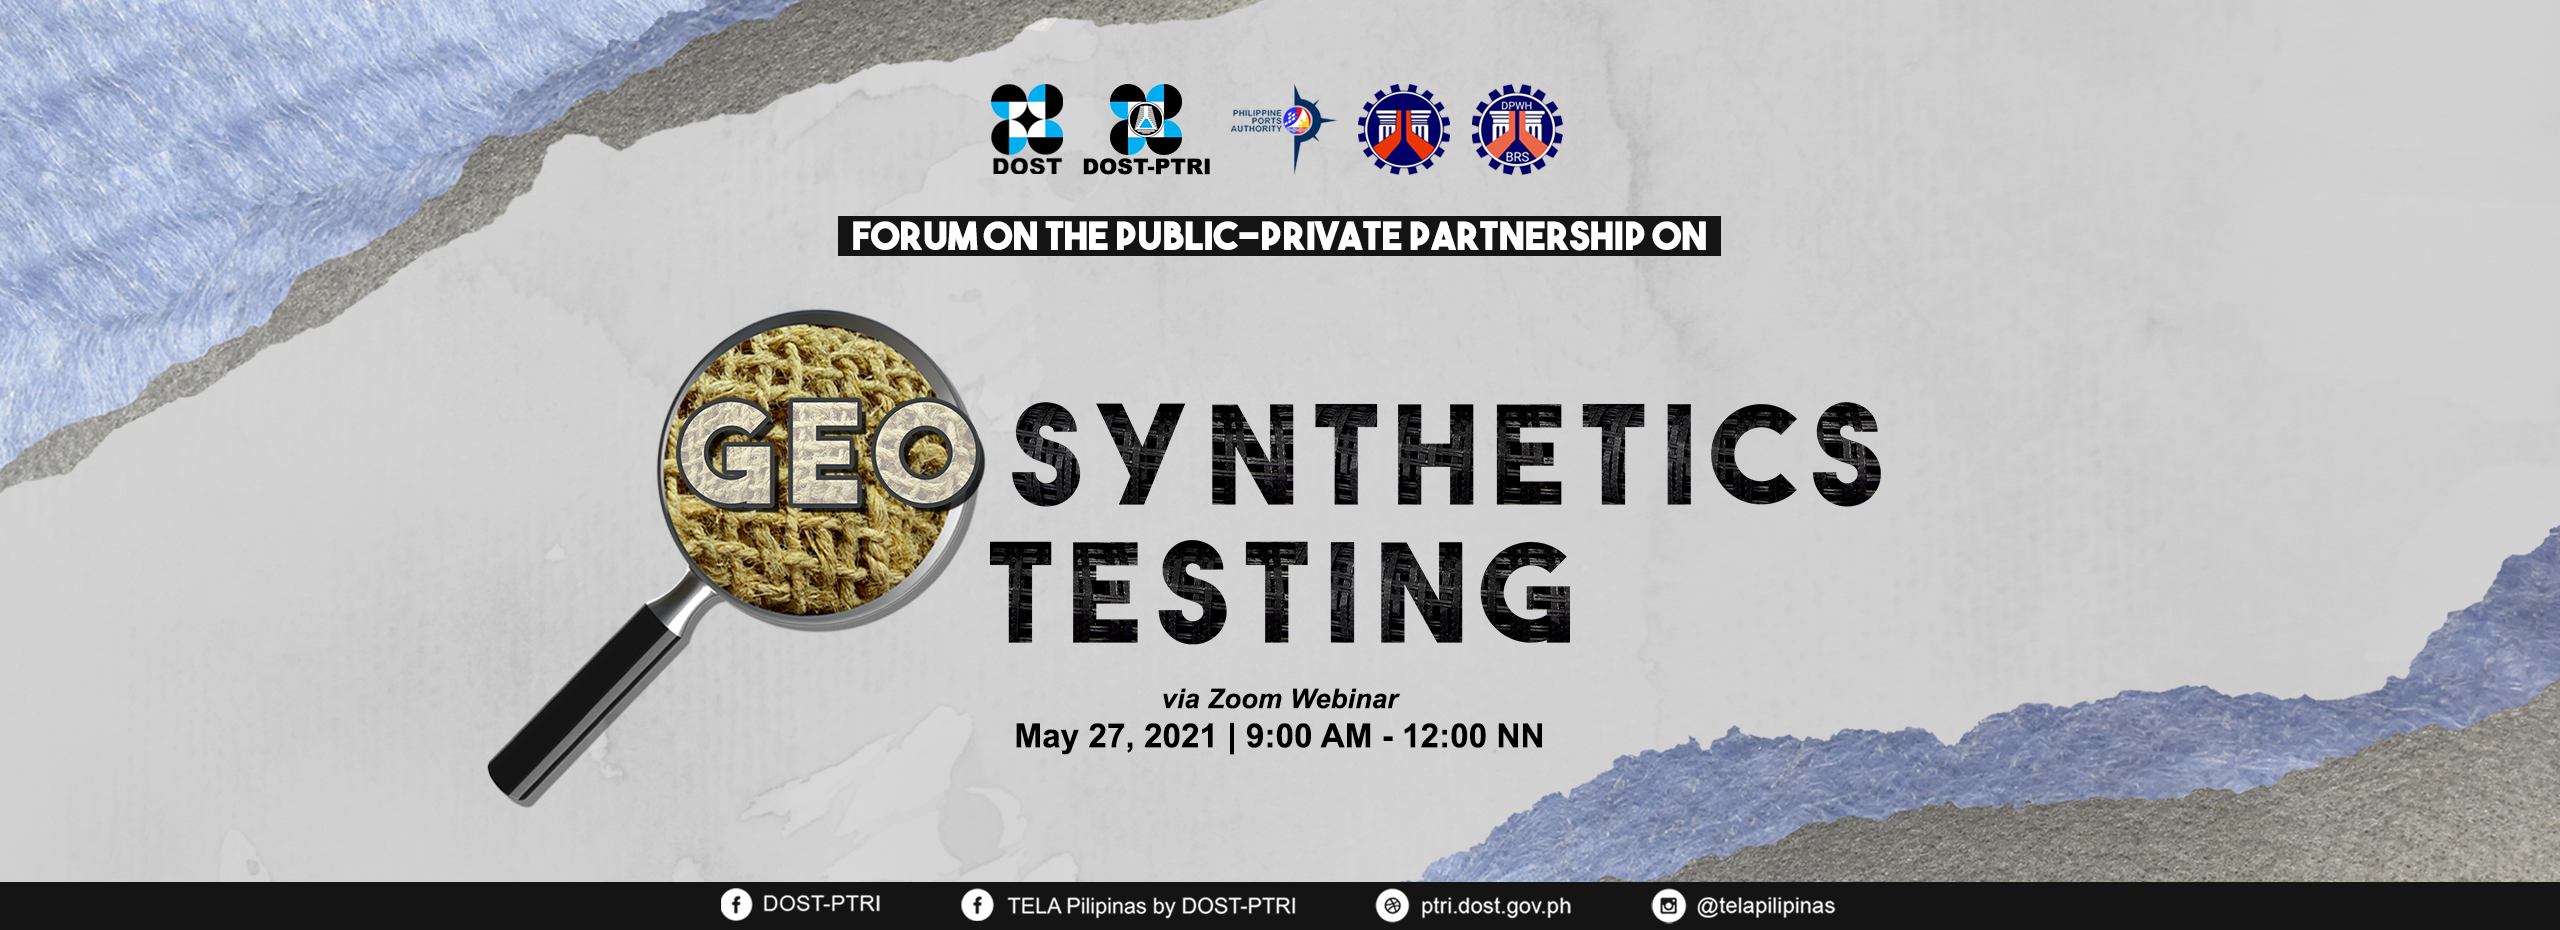 Synthetic Testing